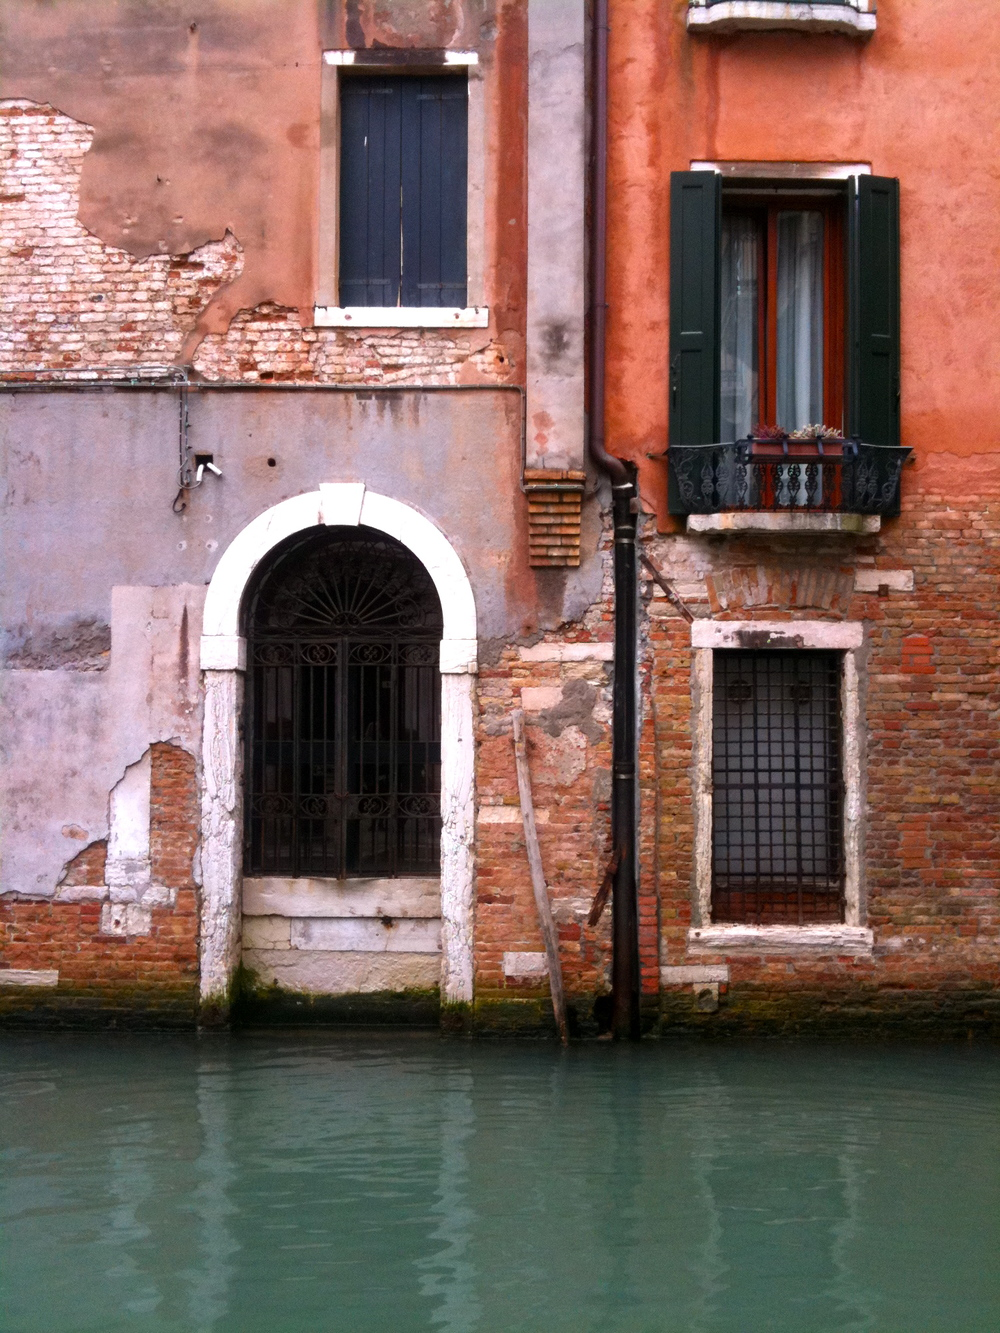 Venice: Day One